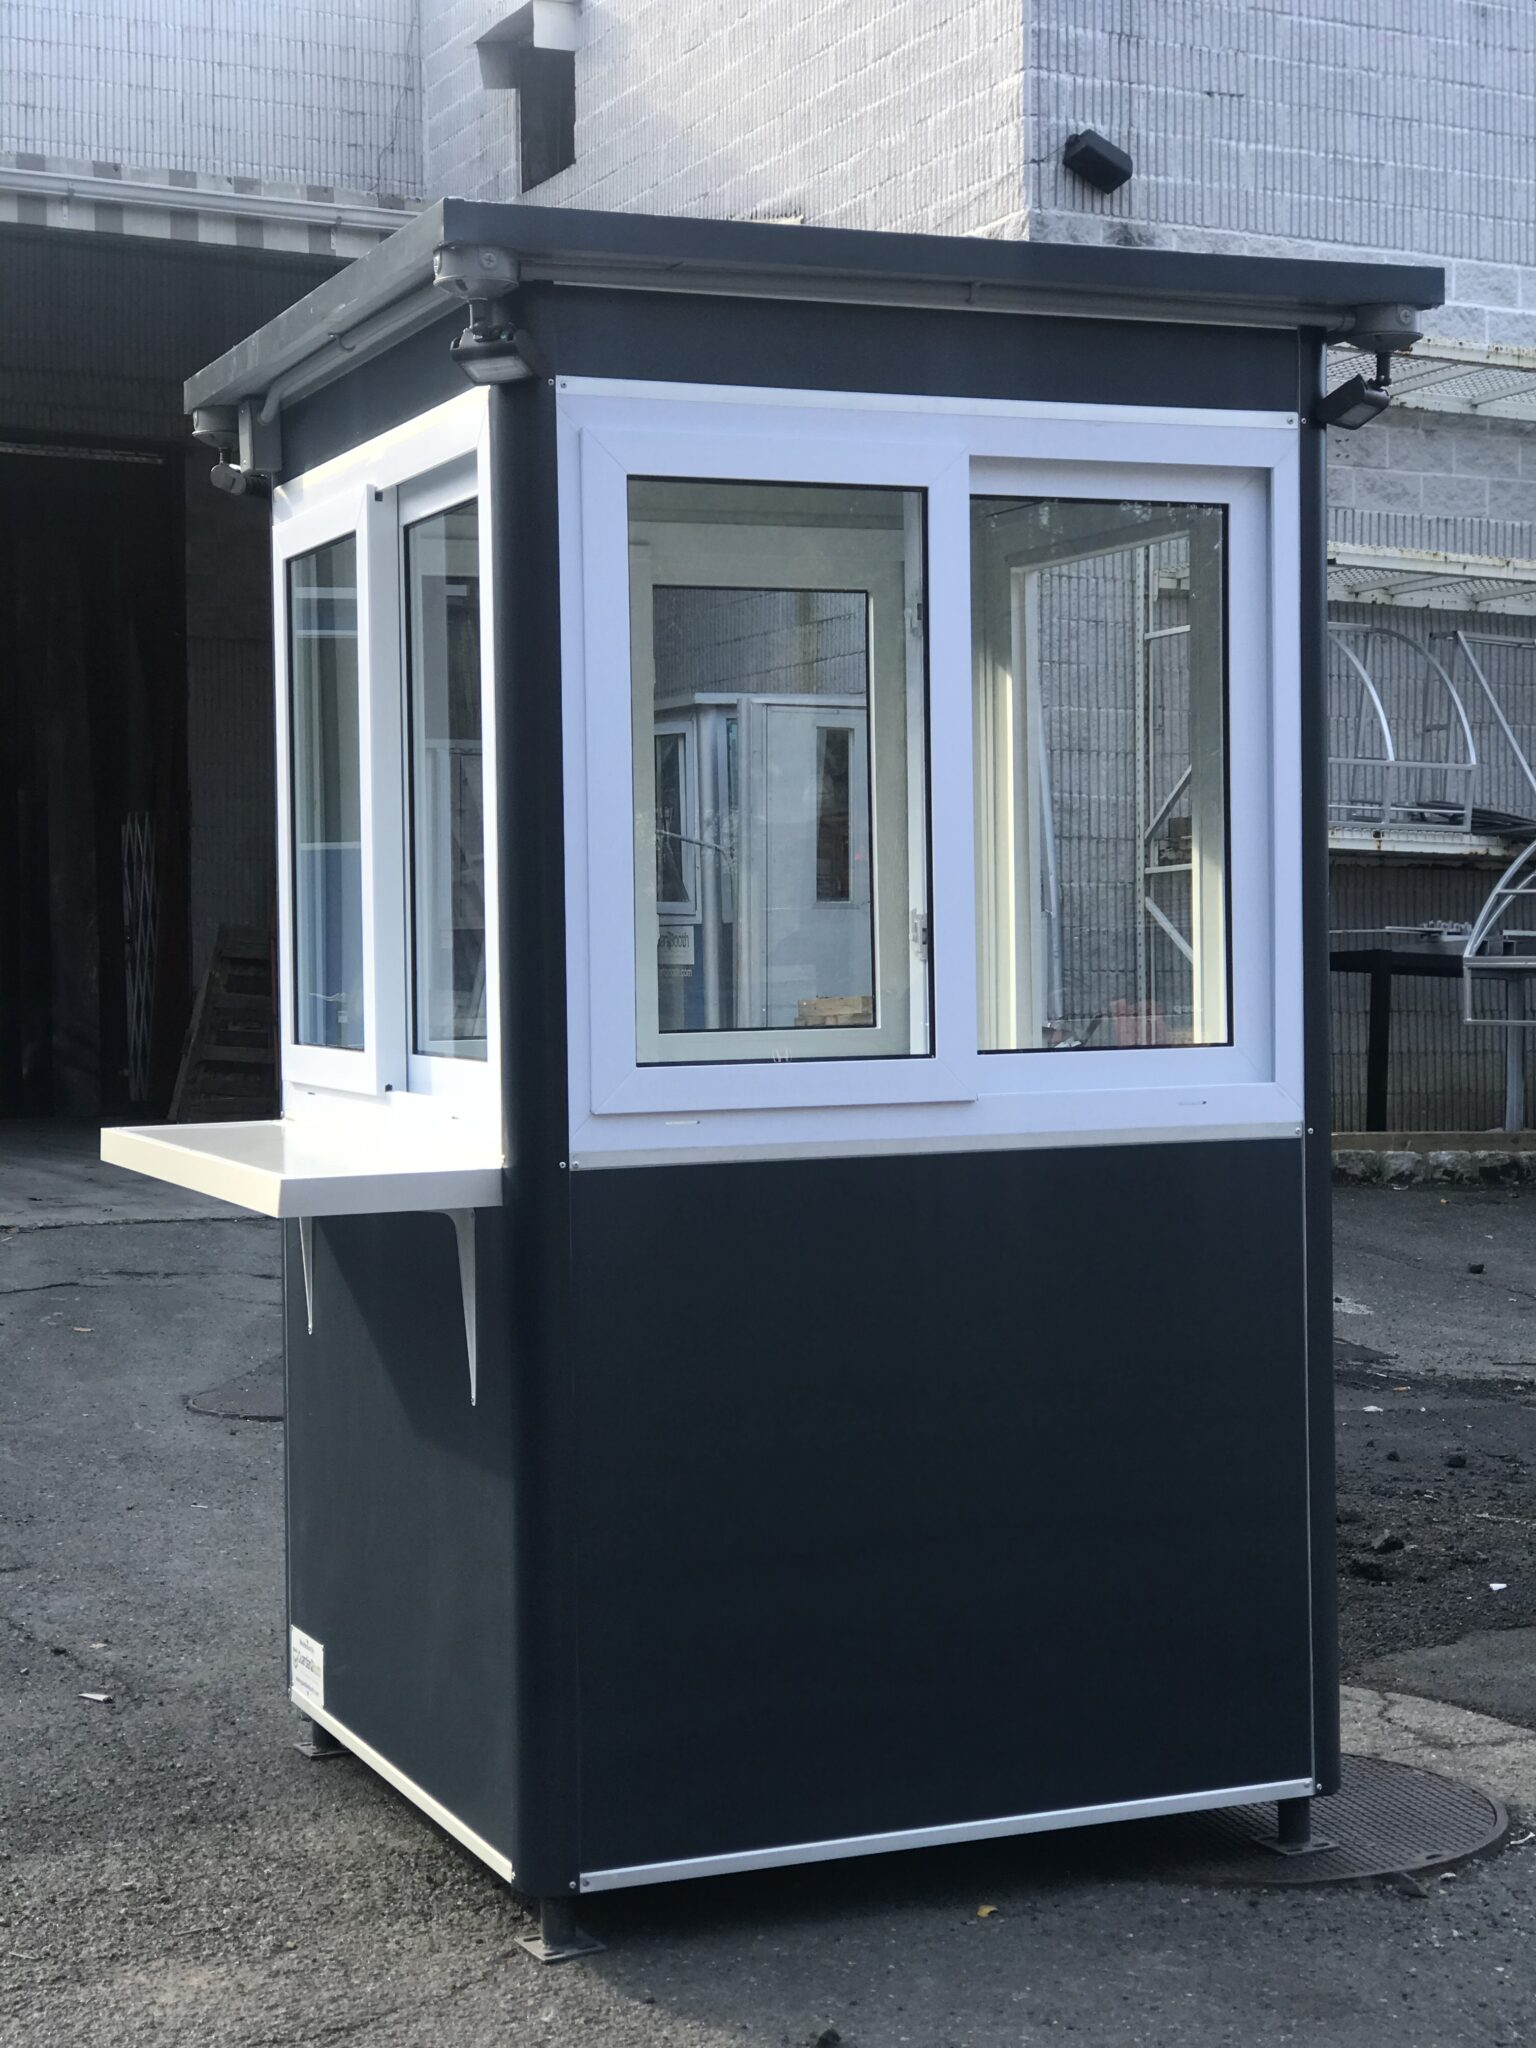 4x4 Ticket and Cashier Booth in Bronx, NY with Custom Exterior Vinyl Wrap, anchoring brackets, exterior desk and floodlights